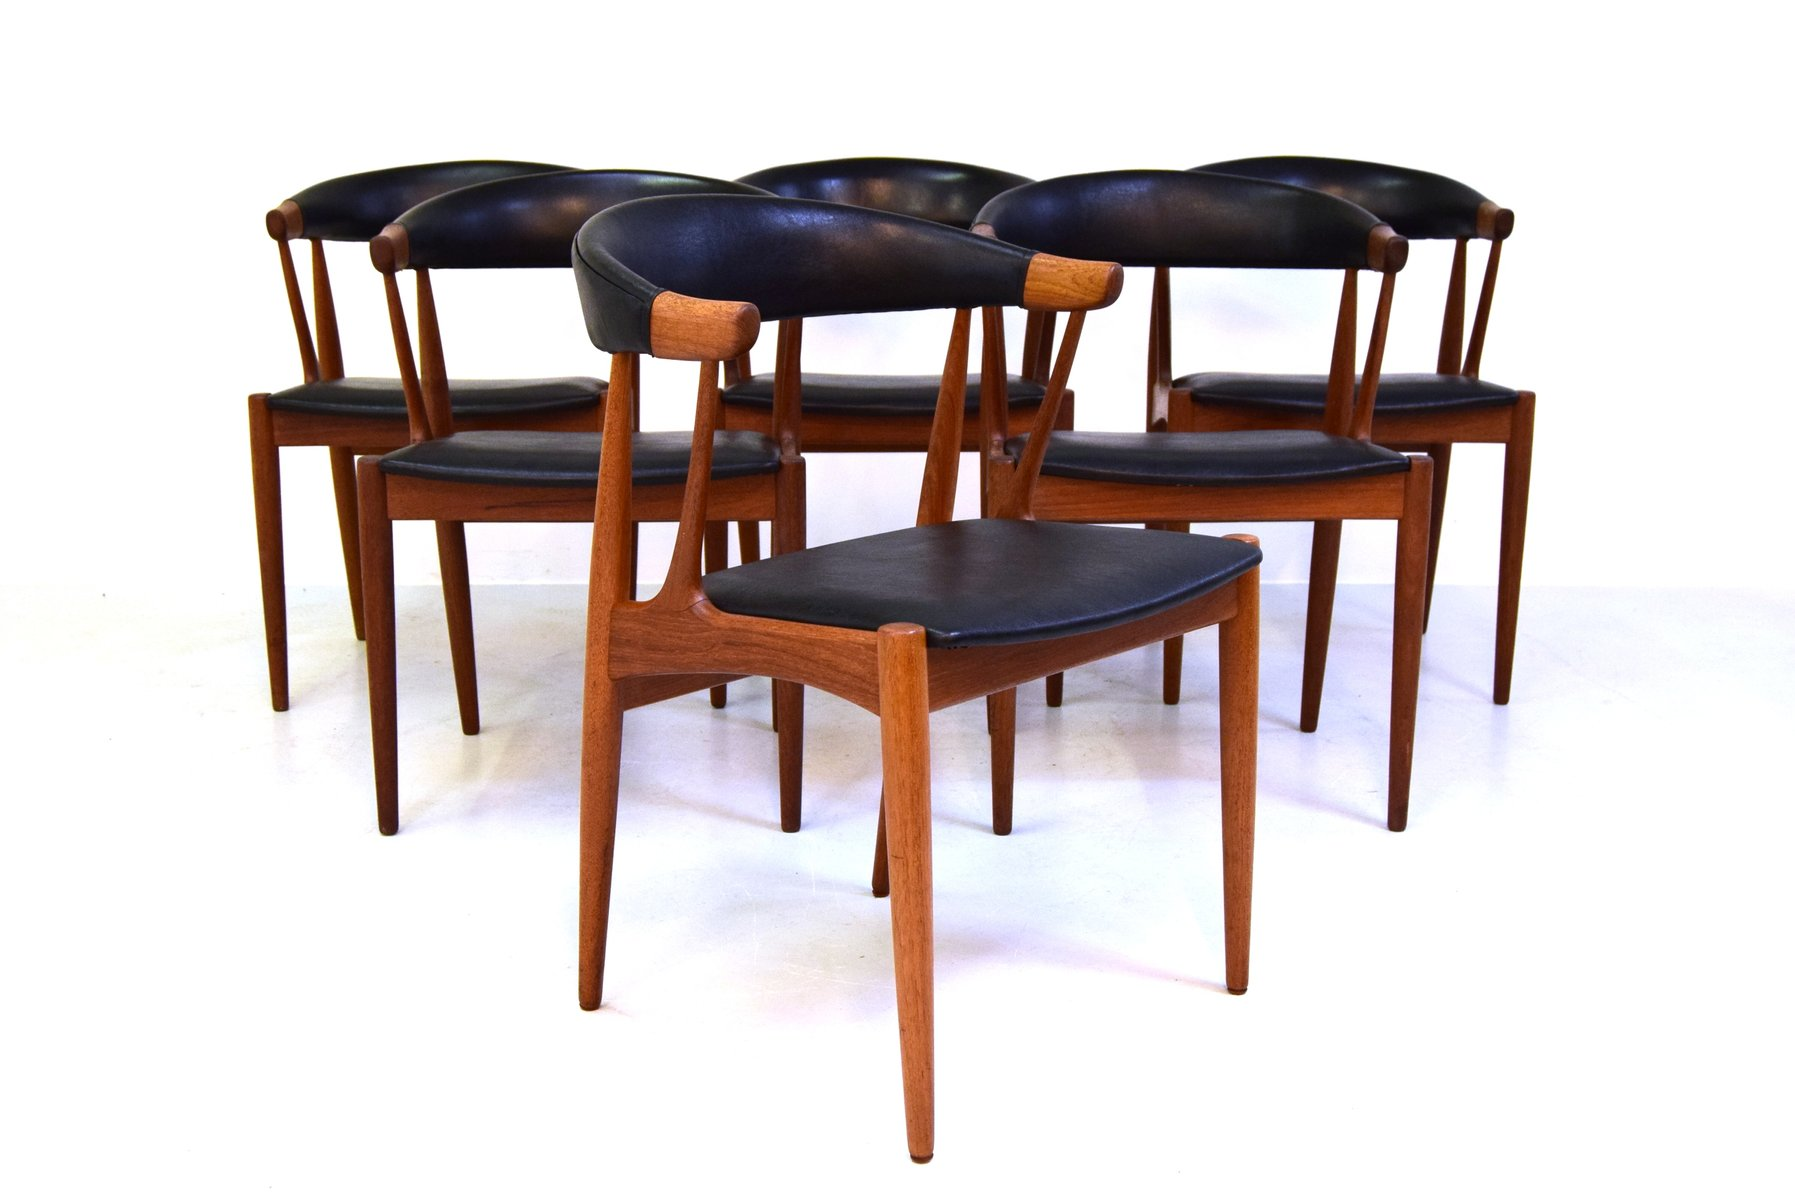 Model BA 113 Dining Chairs by Brdr Johannes Andersen for